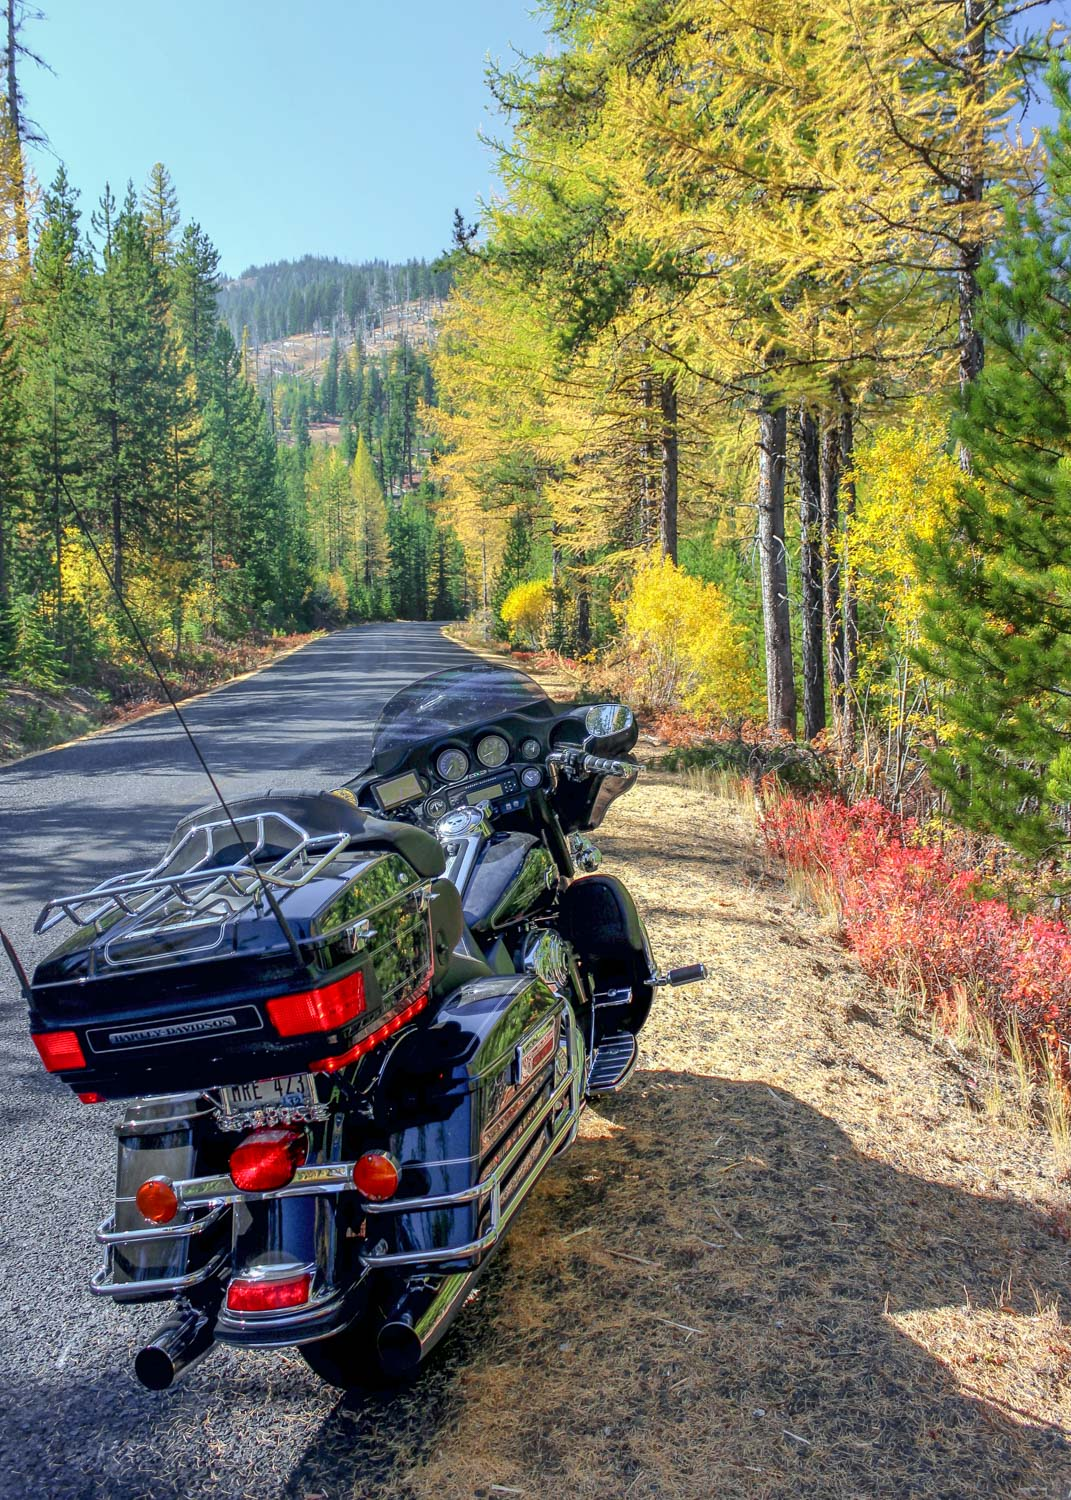 Fall ride on the Hells Canyon Scenic Byway in Oregon - Photo by Ron Huckins